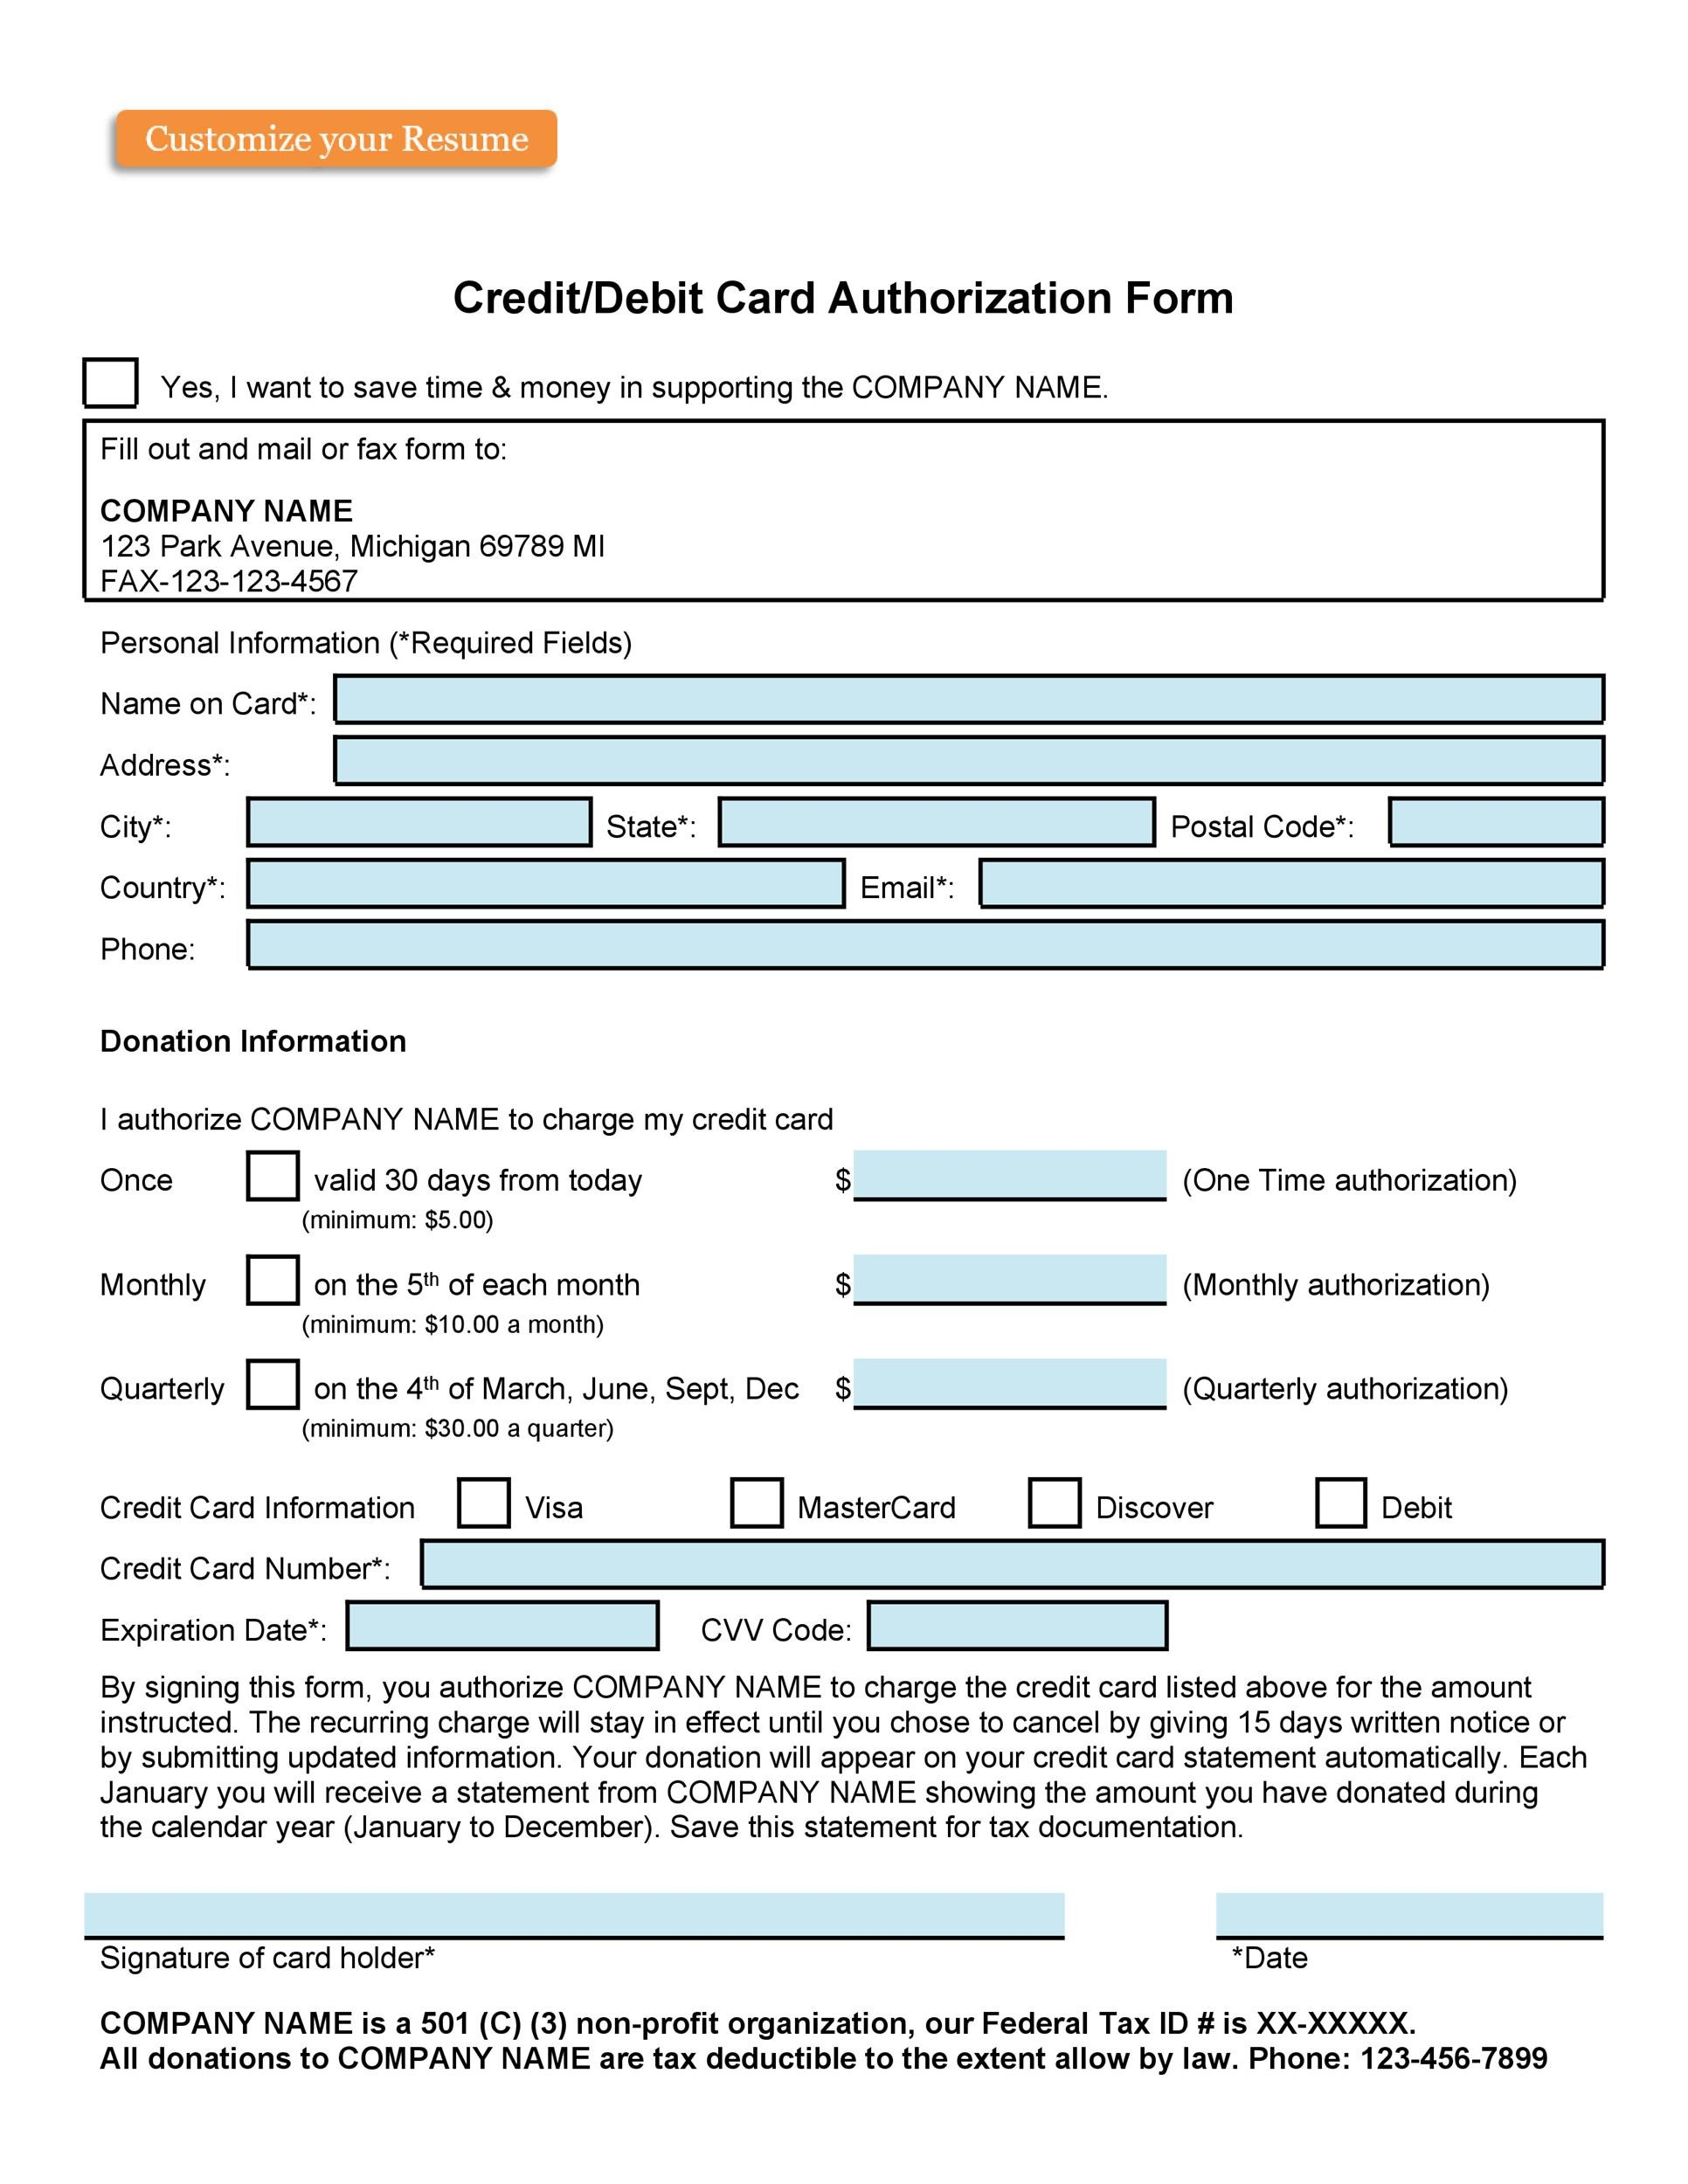 41 Credit Card Authorization Forms Templates